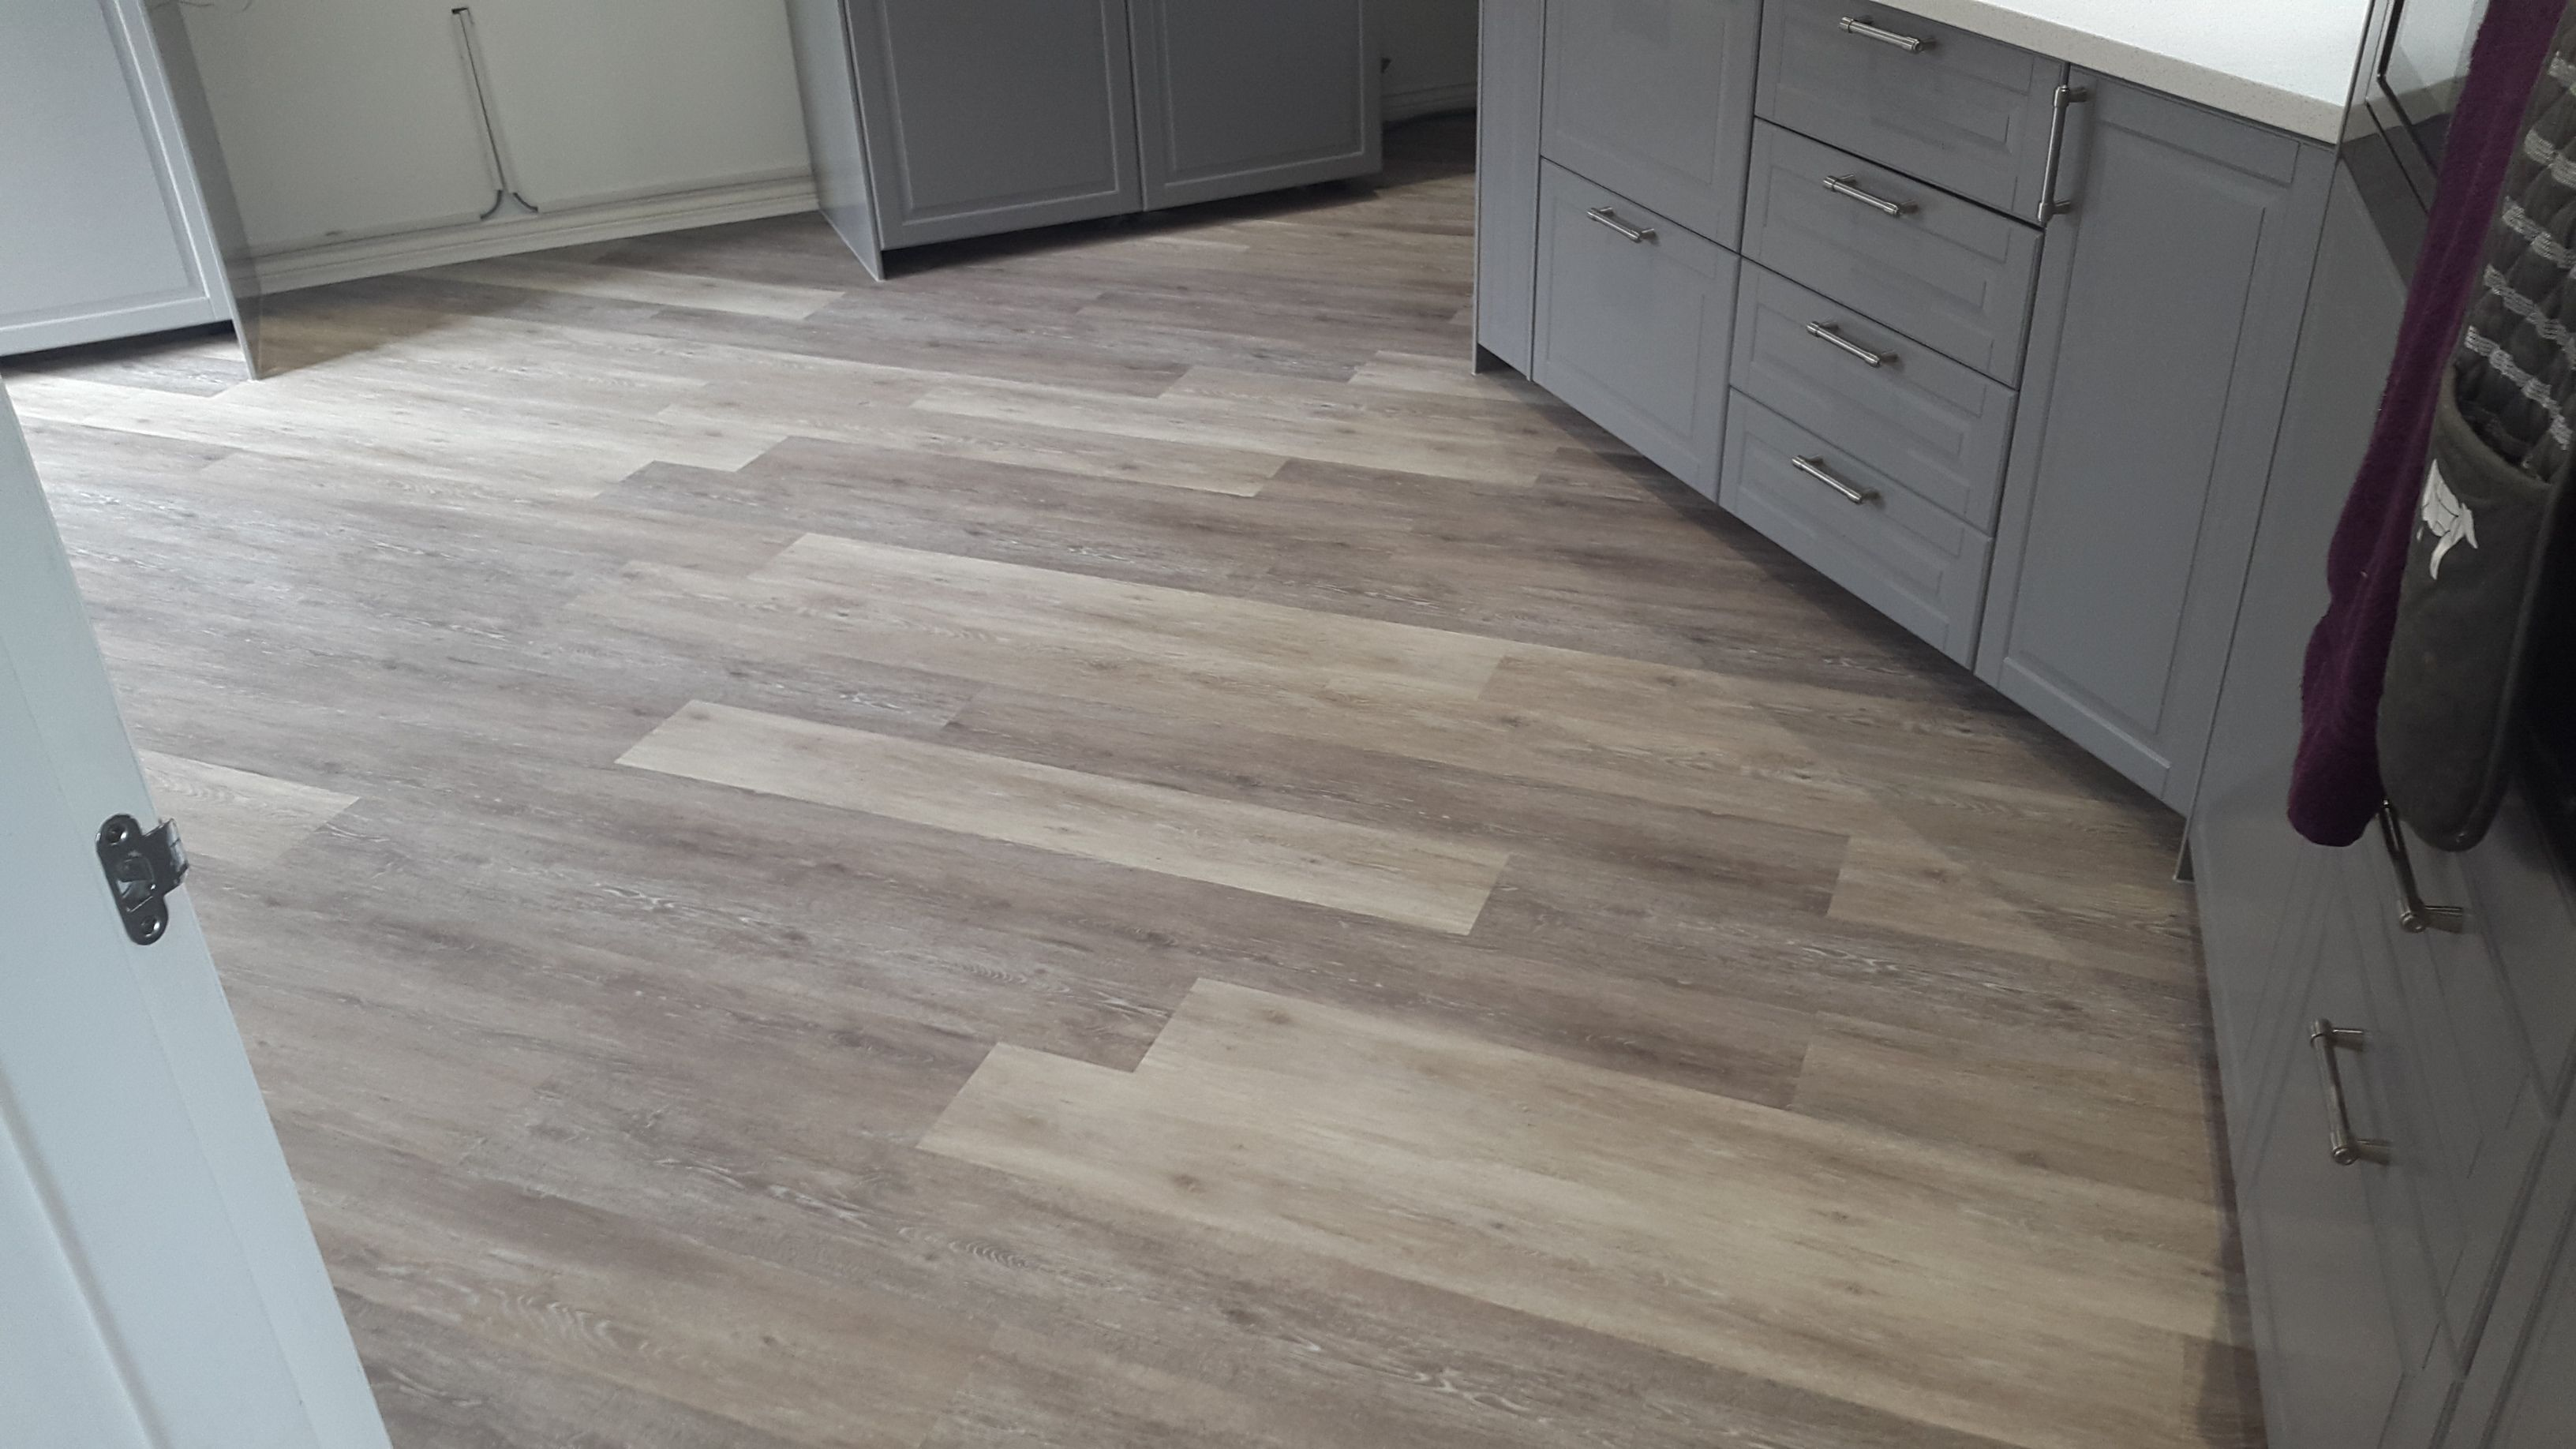 Pin by BW Flooring on Polyflor Camaro 'Smoked Lined Oak